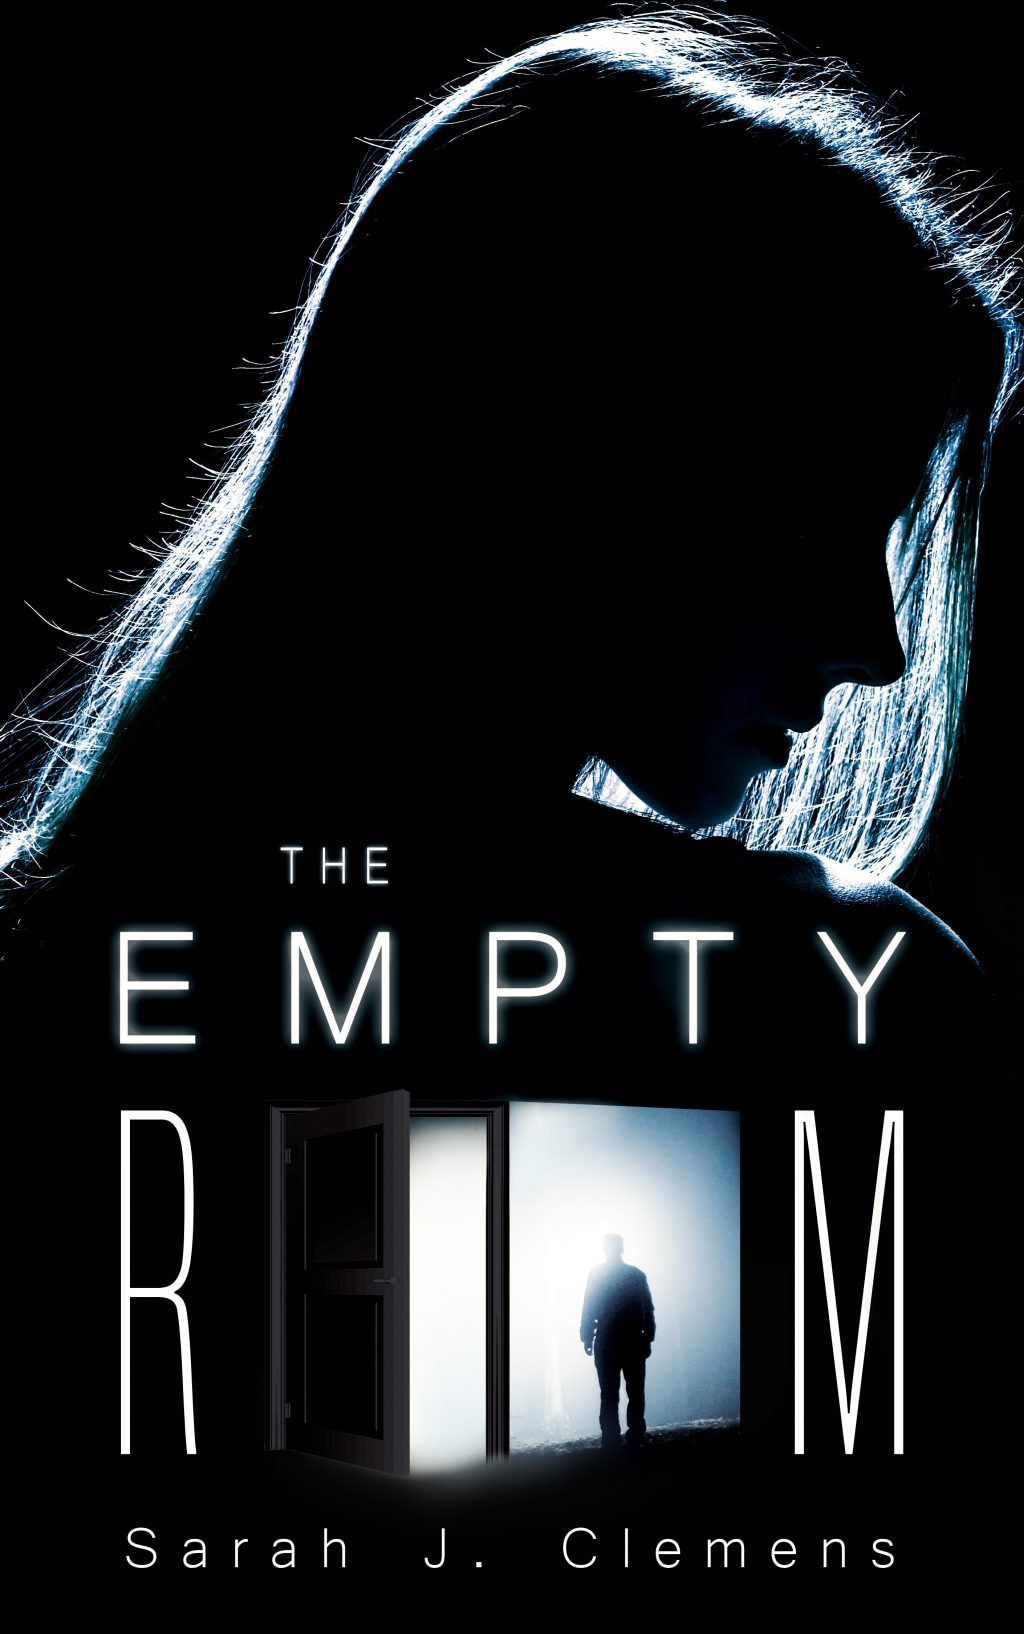 The Empty Room by Sarah J Clemens